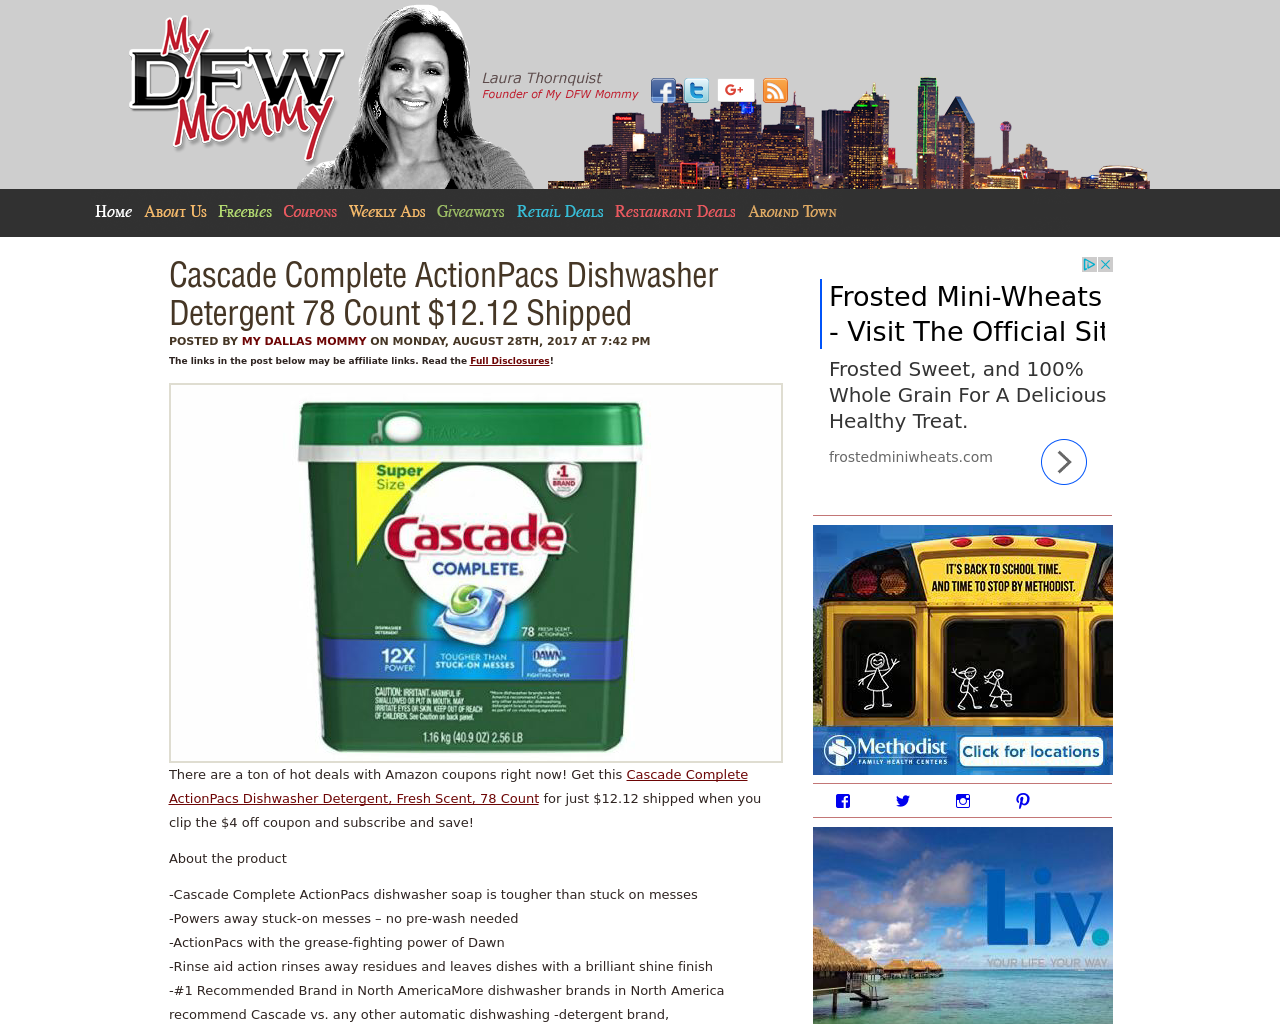 My-DFW-Mommy-Advertising-Reviews-Pricing